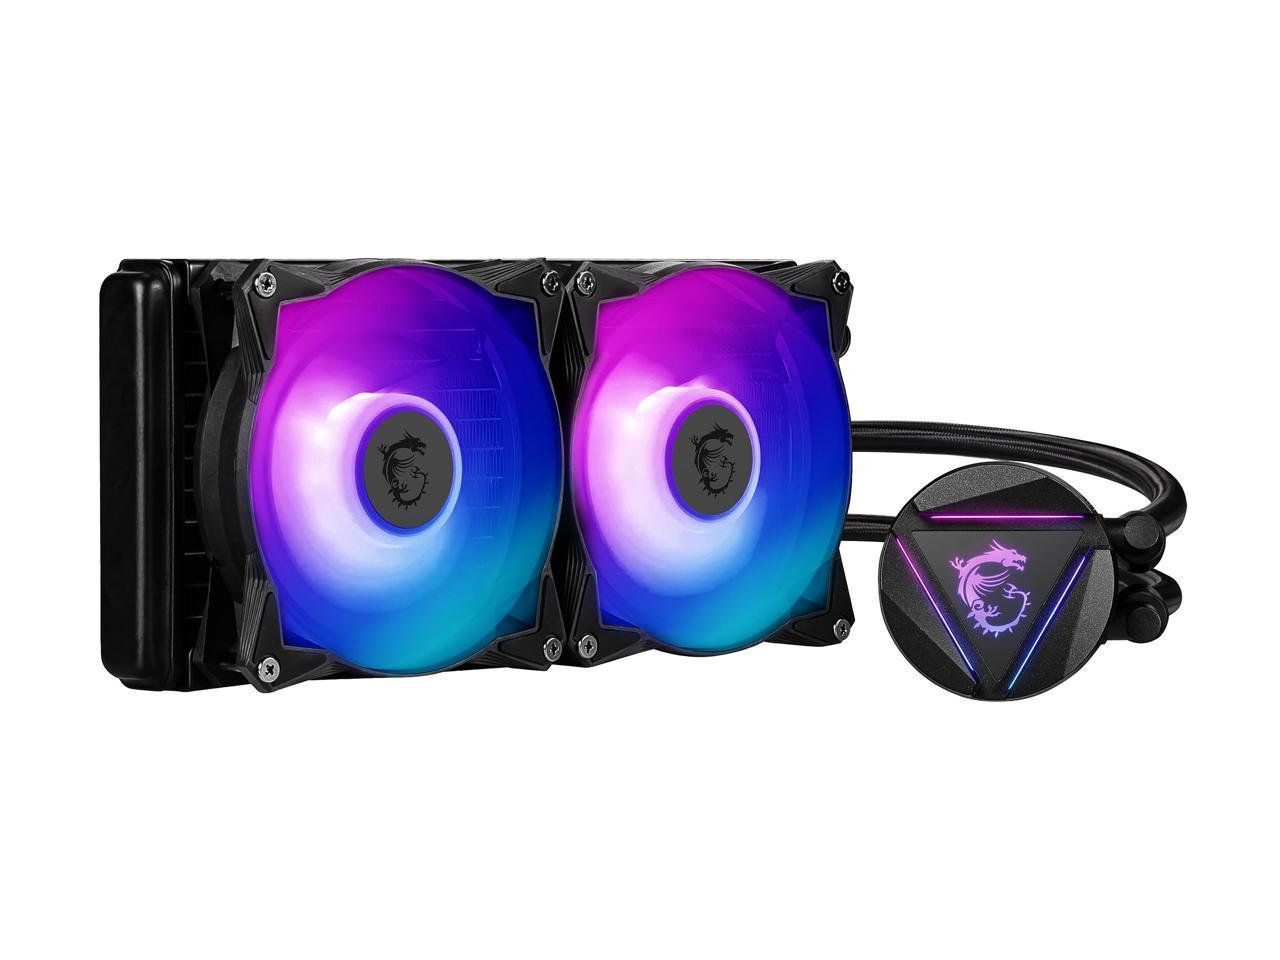 MSI MAG CORELIQUID 240R AIO RGB Liquid CPU Cooler